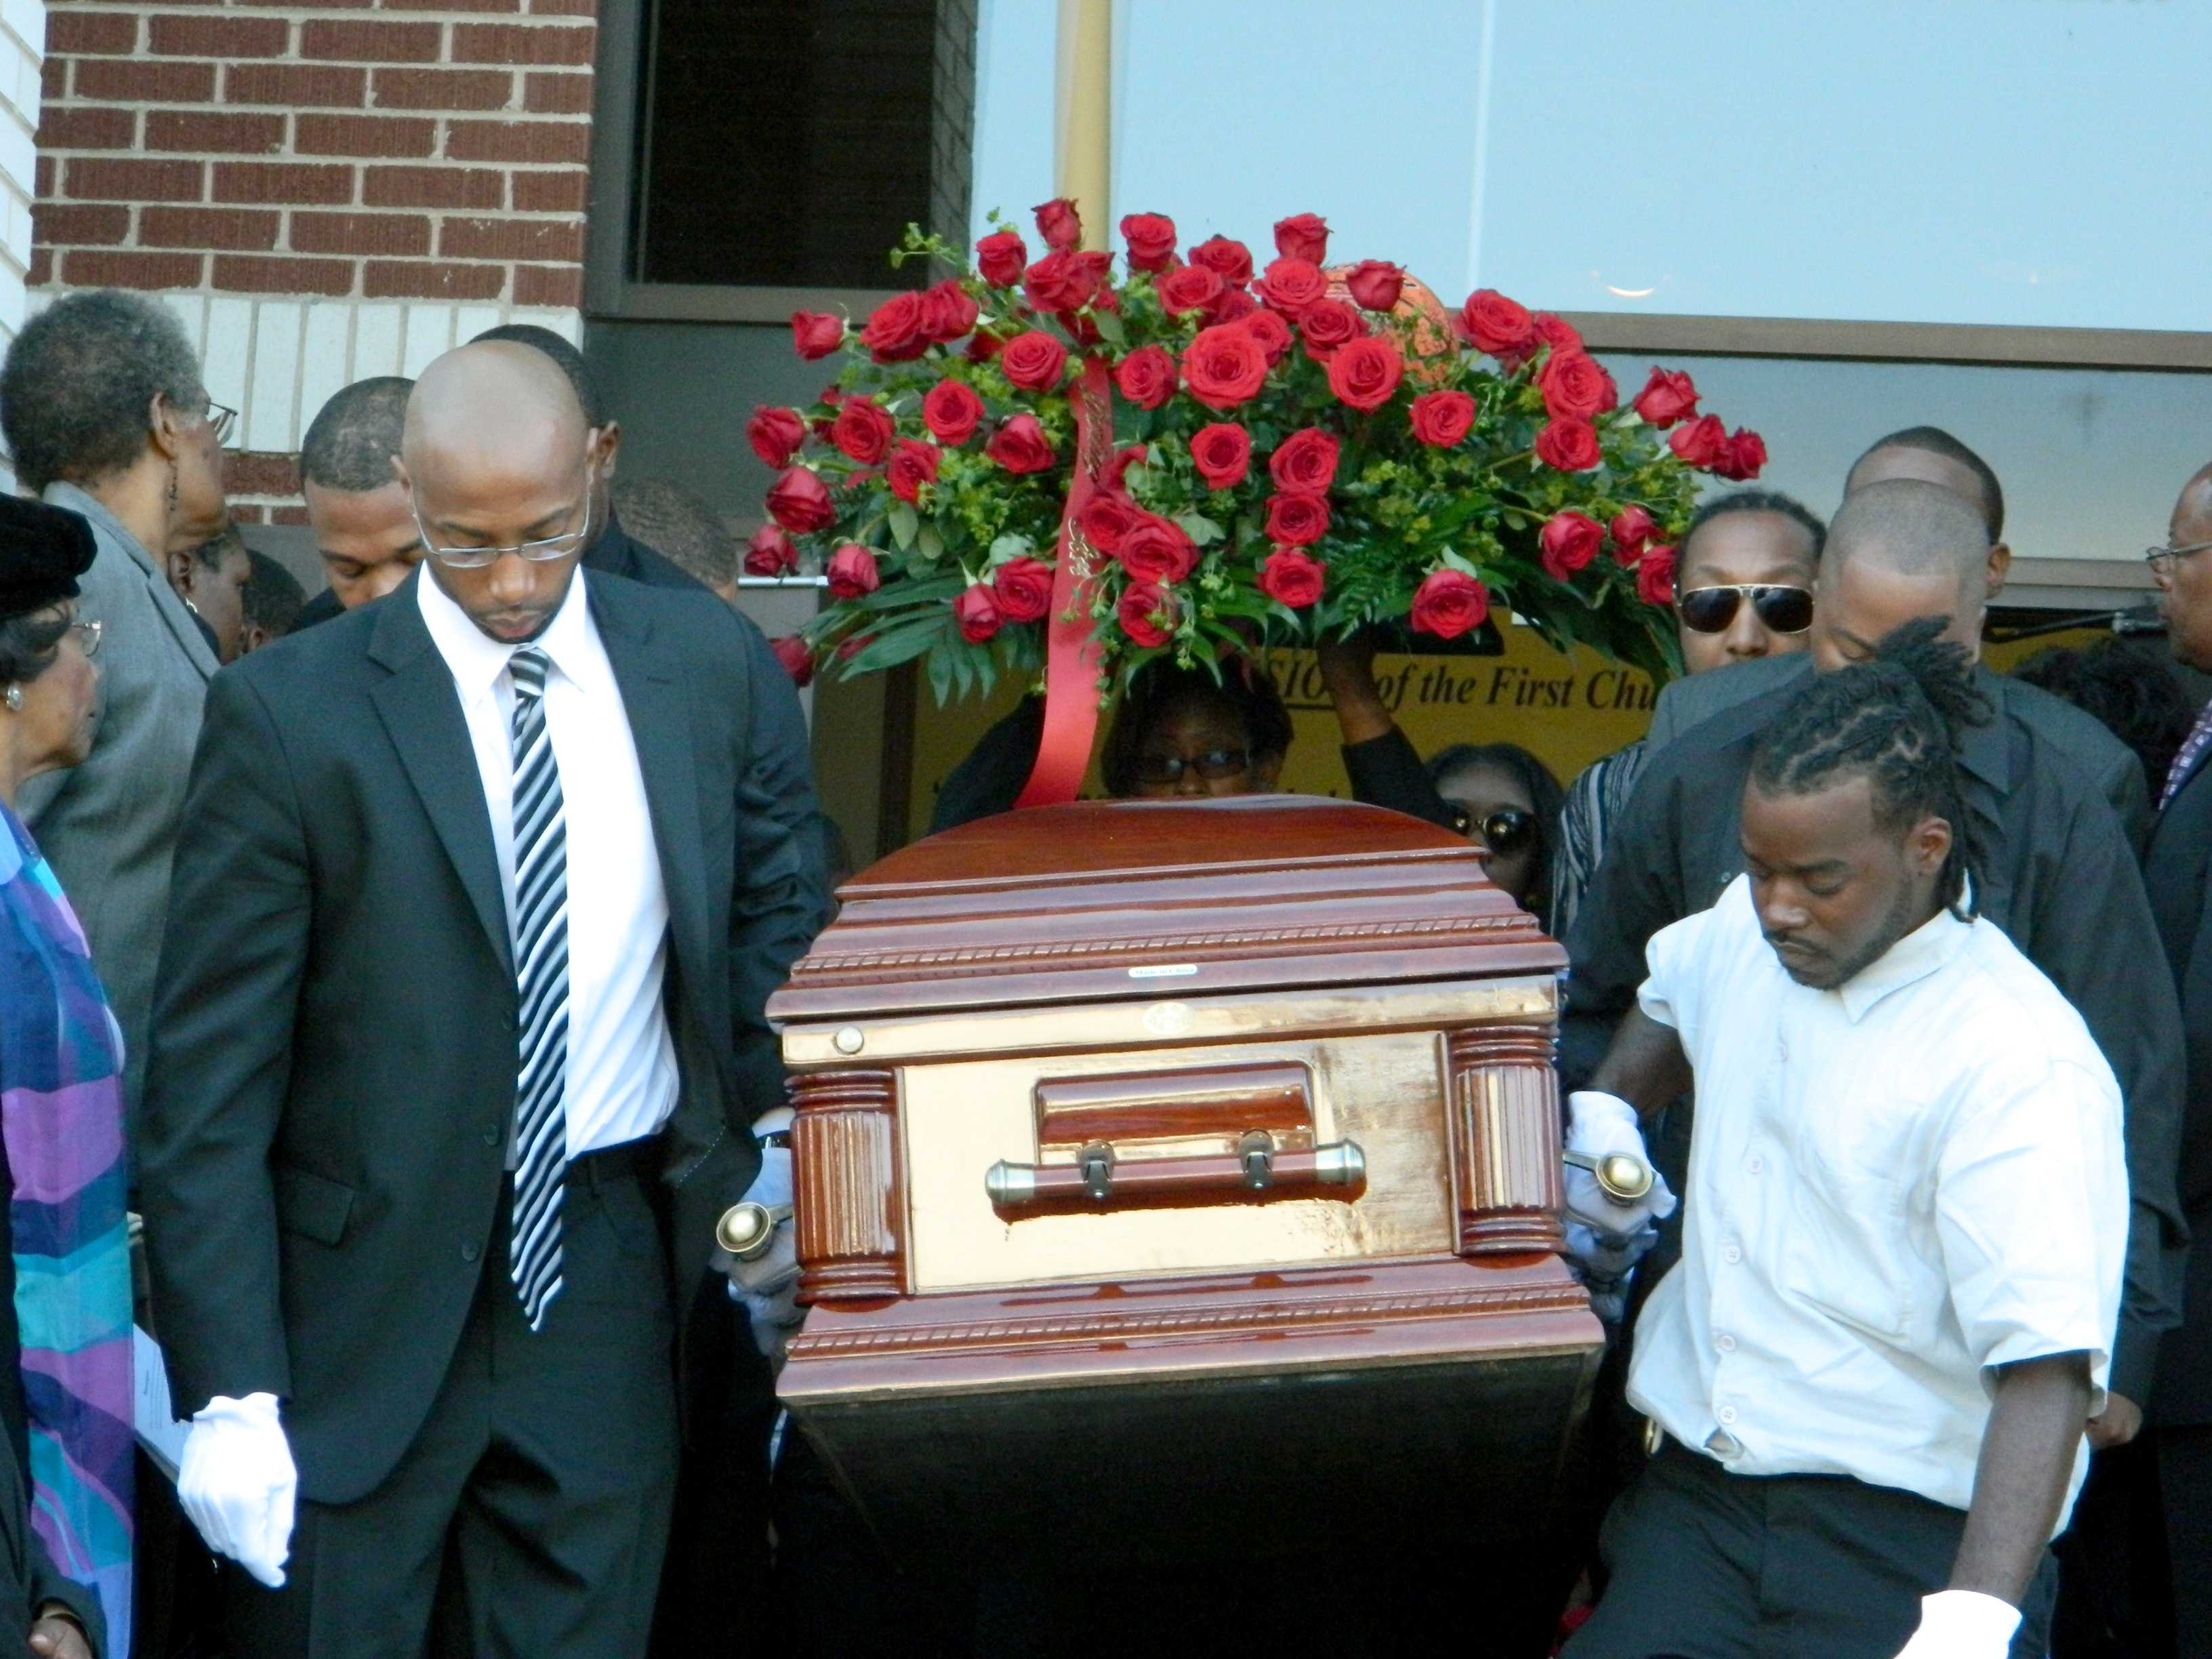 Dajae Coleman's body is carried out of the church after the funeral services, which were conducted by Pastor Kenneth Cherry.